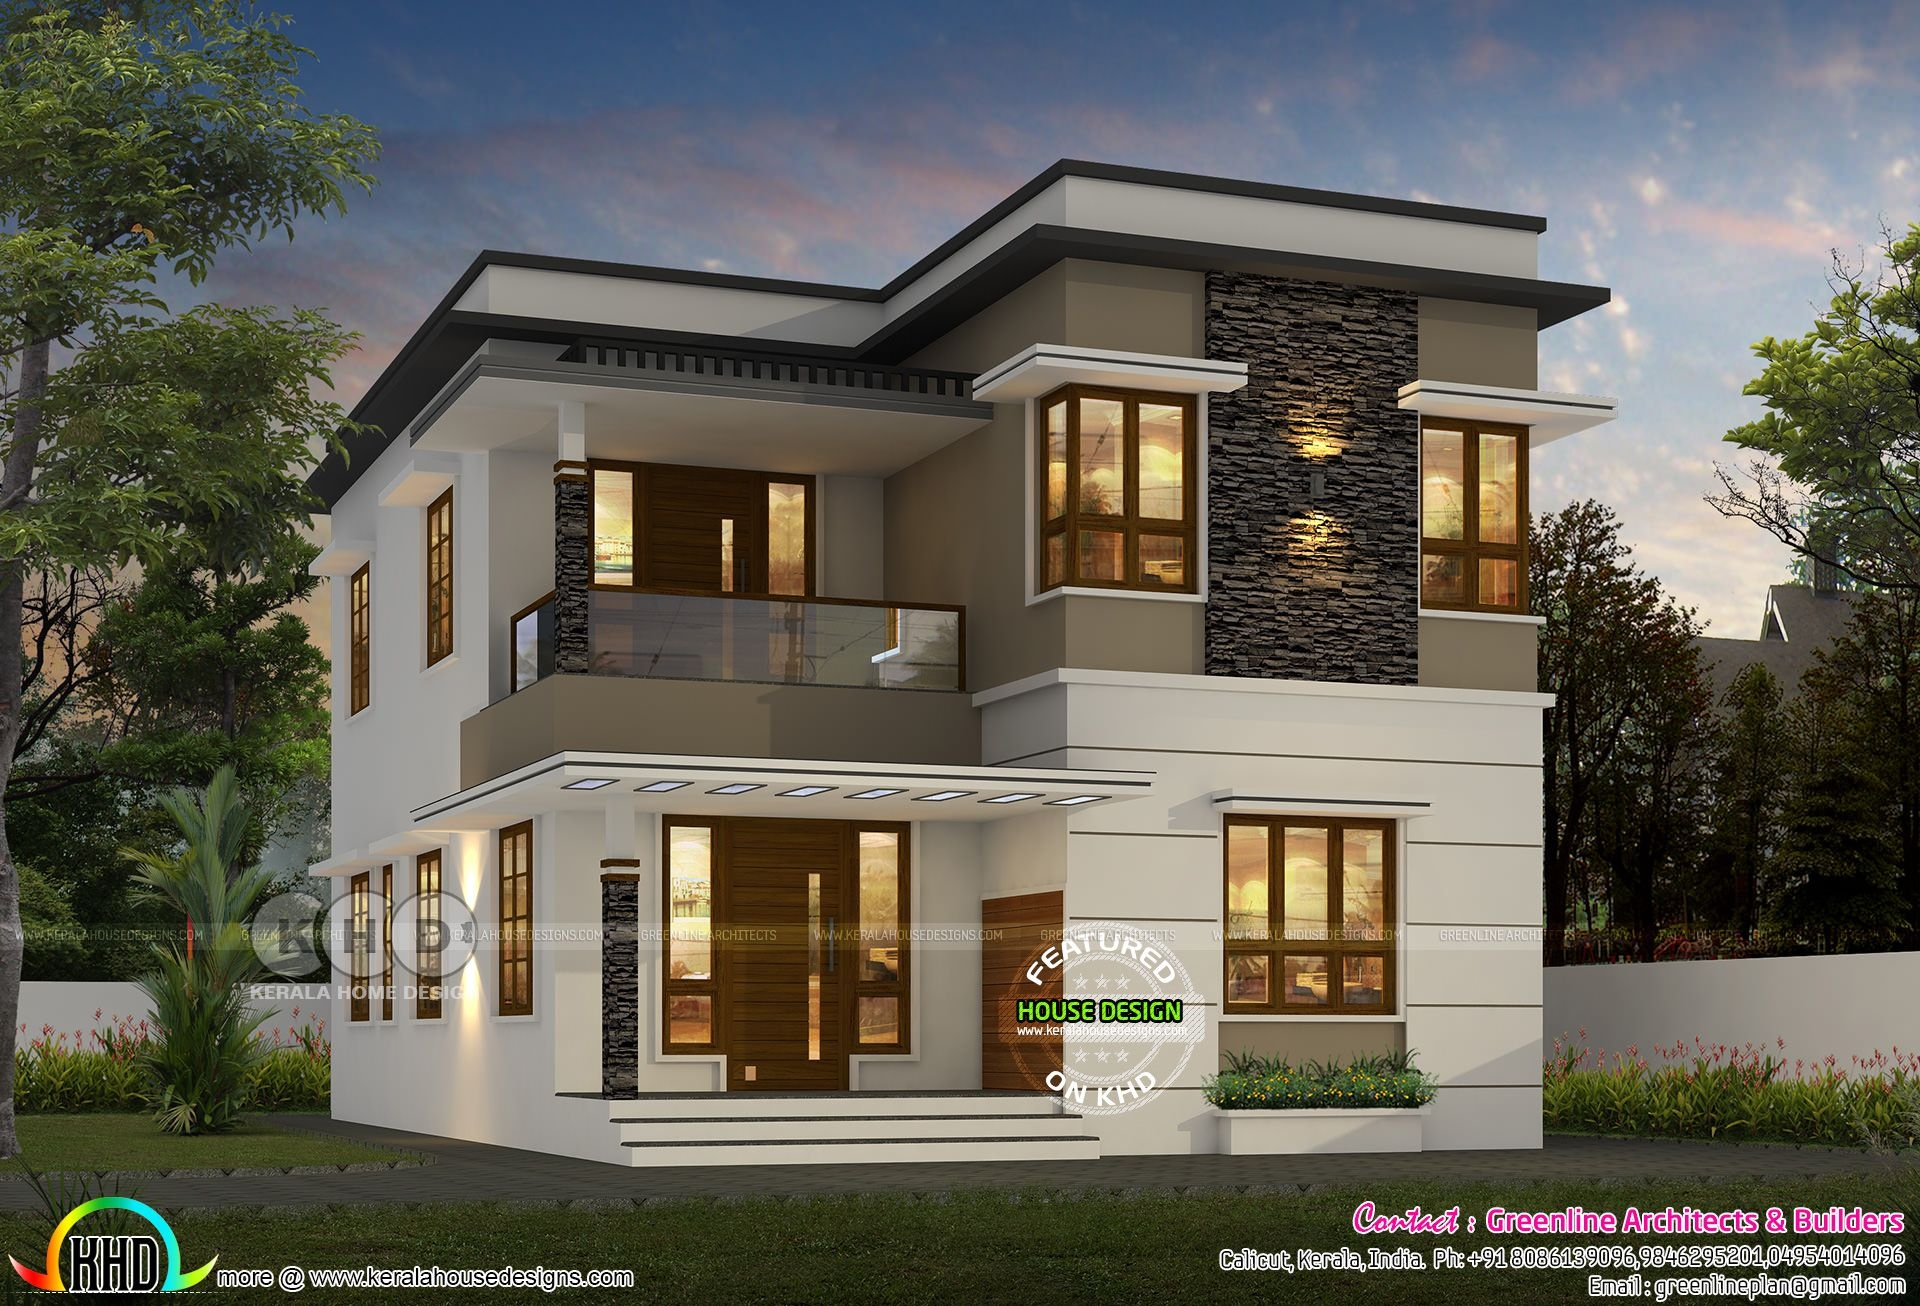 1600 Sqft 4 Bedroom Modern Flat Roof House  Kerala Home Design And Floor Plans